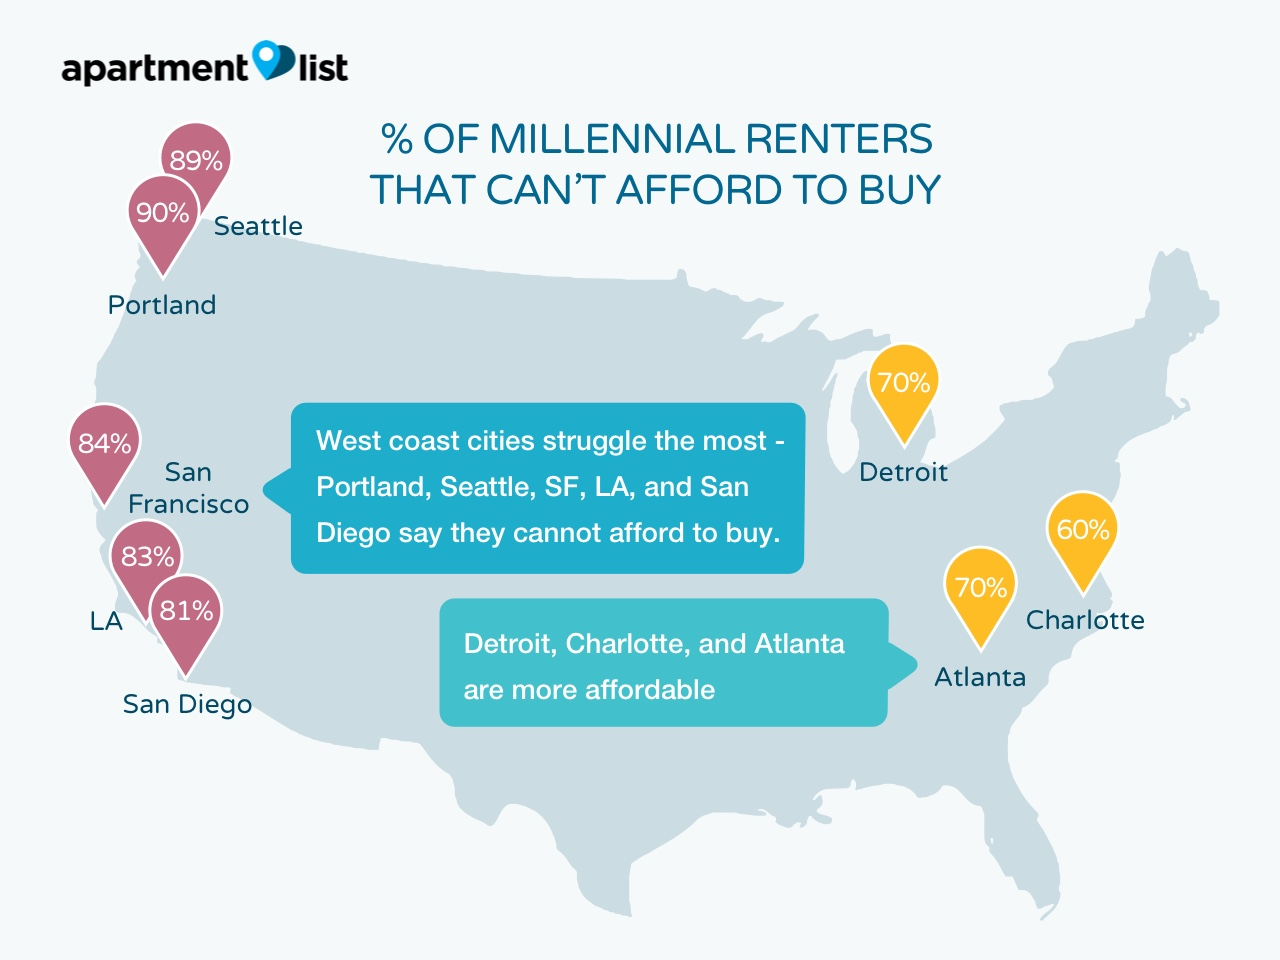 Apartment List Recently Conducted A Survey Of More Than 30,000 Renters  Across The United States, Asking Questions About Their Plans For  Homeownership,